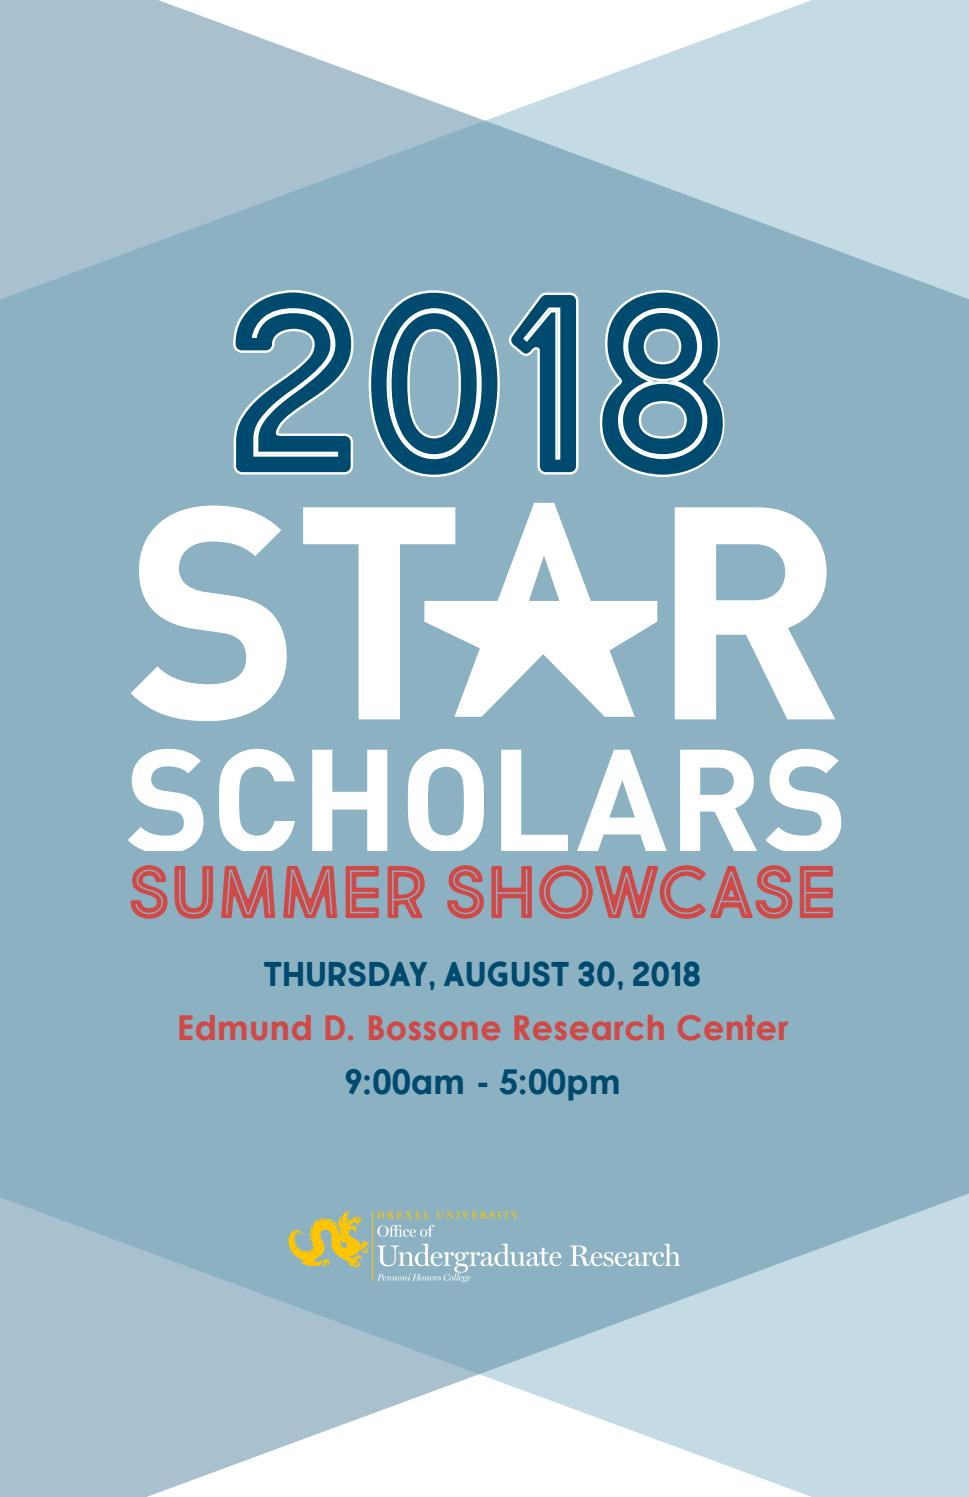 2018 Star Scholars Summer Showcase Booklet By Erica Levi Zelinger Issuu